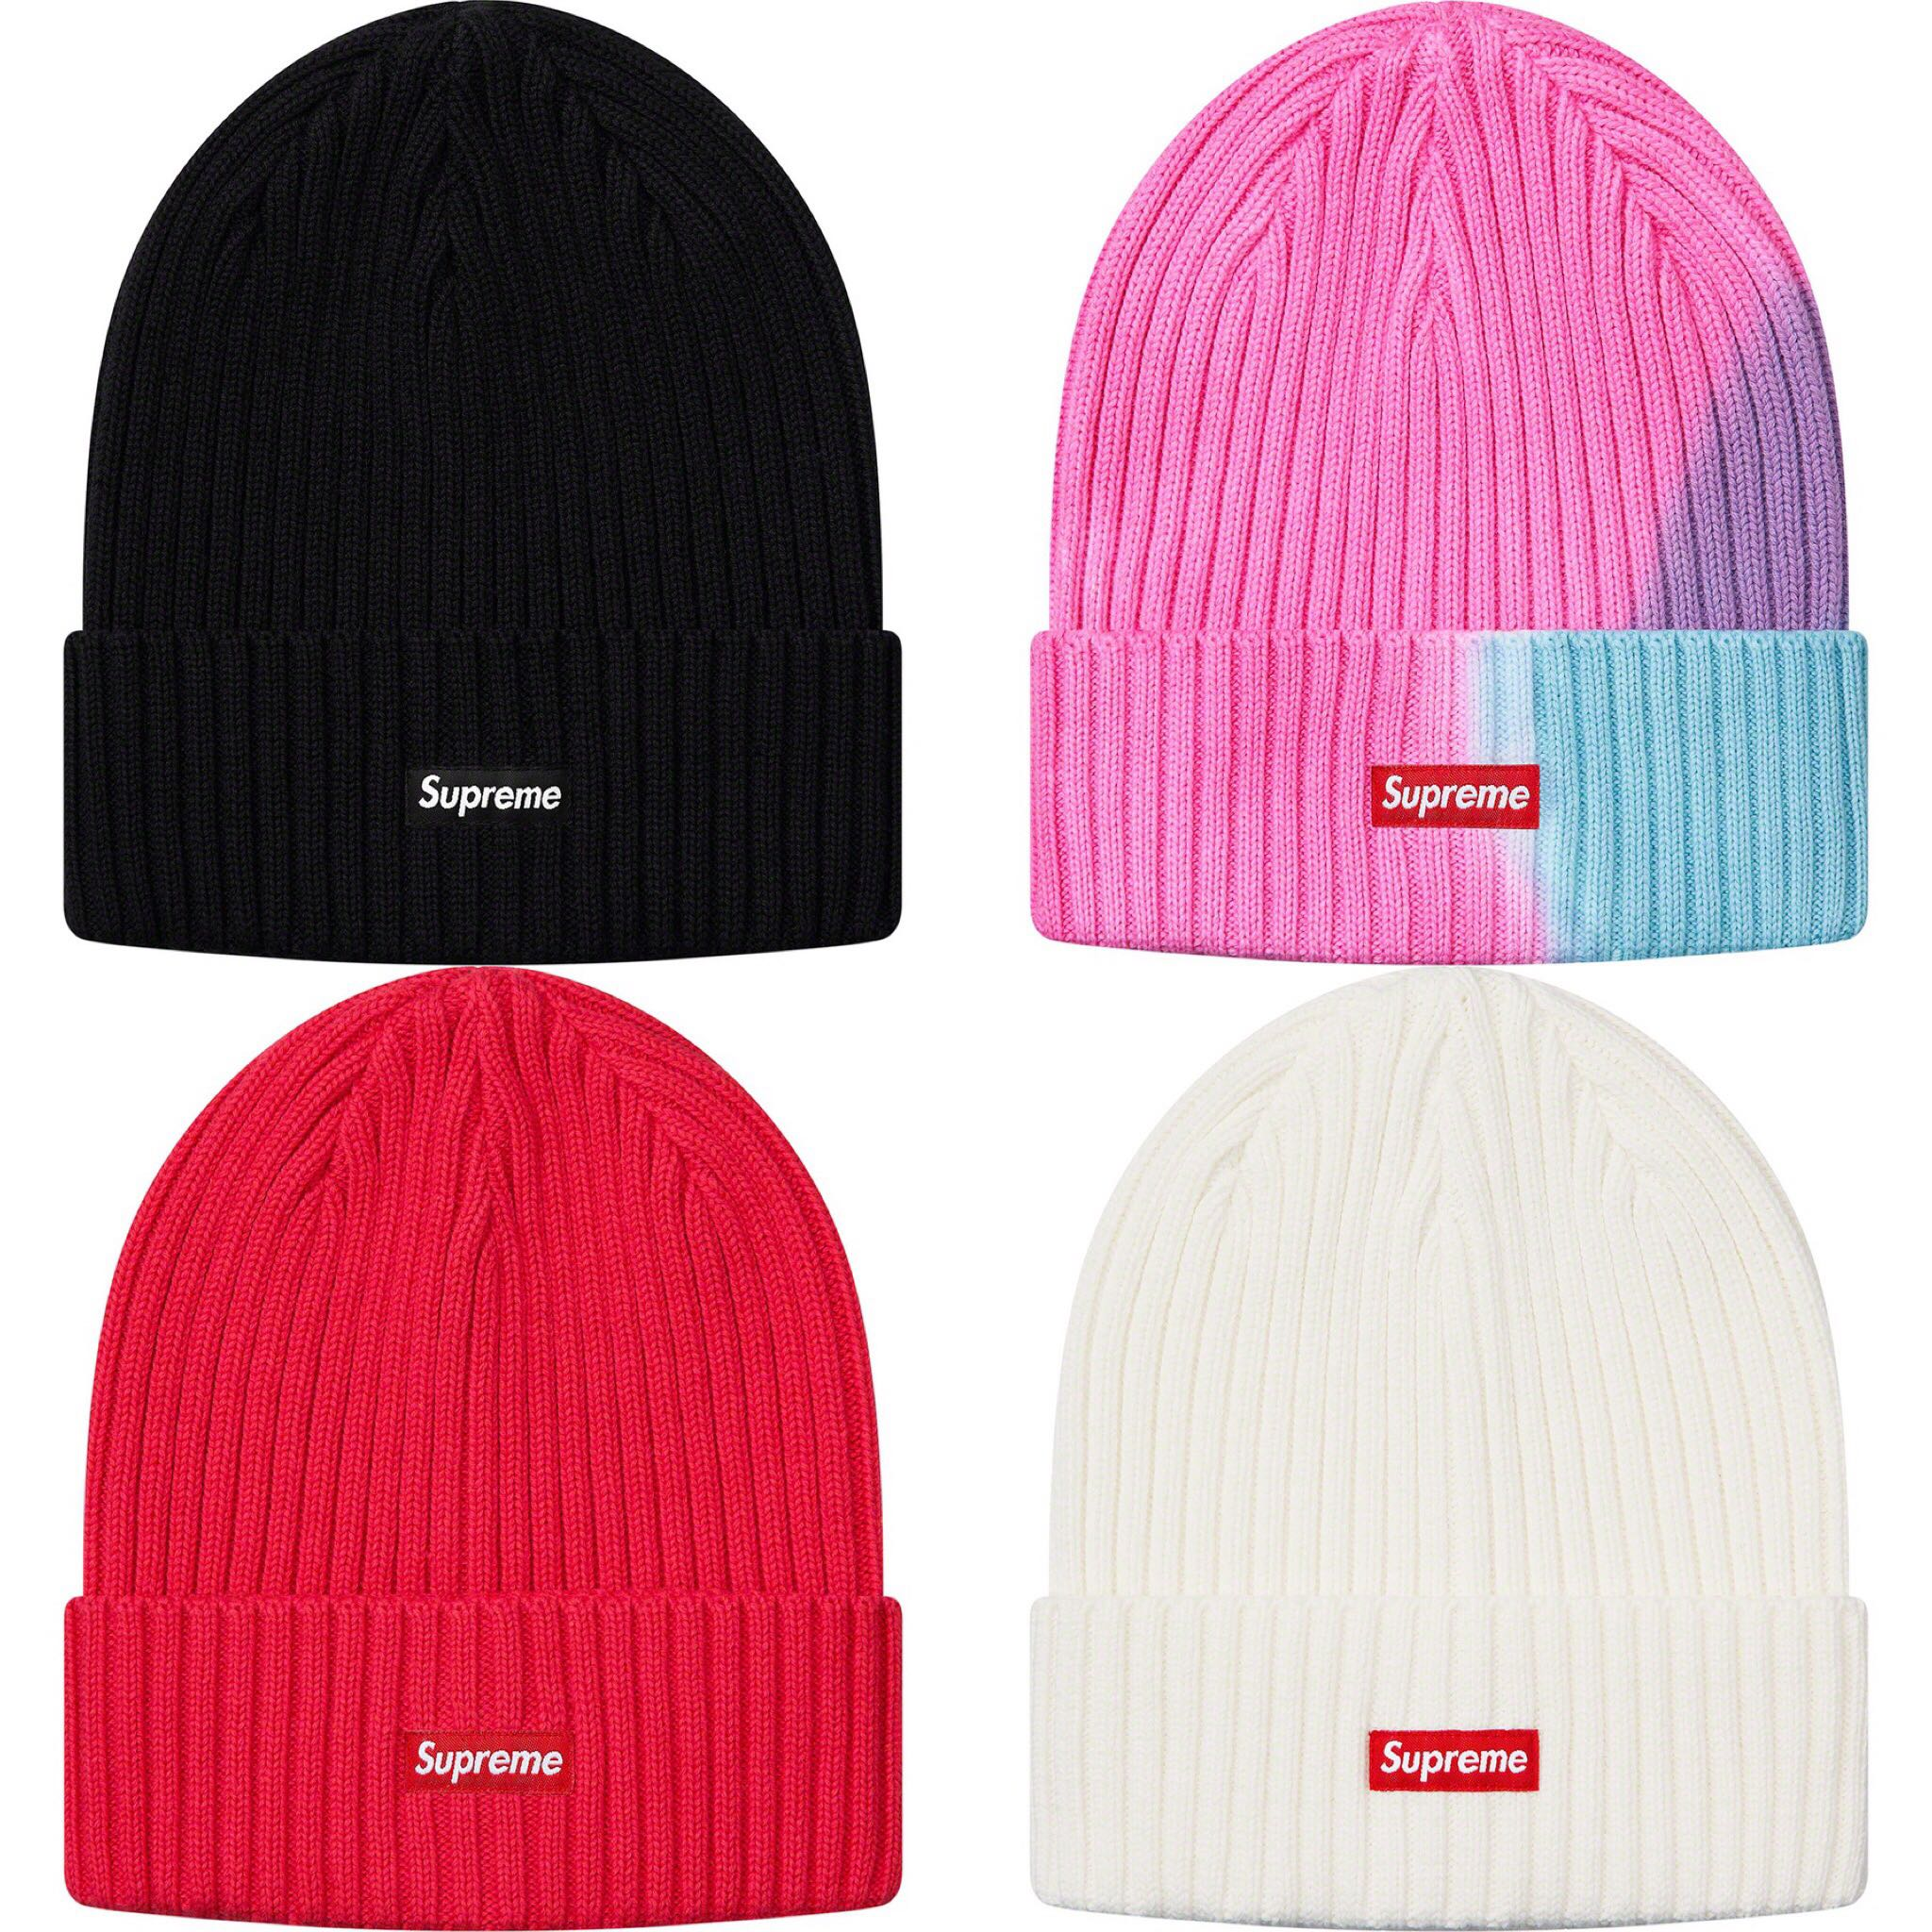 0060f156 SUPREME OVERDYED BEANIE, Men's Fashion, Accessories, Caps & Hats on ...